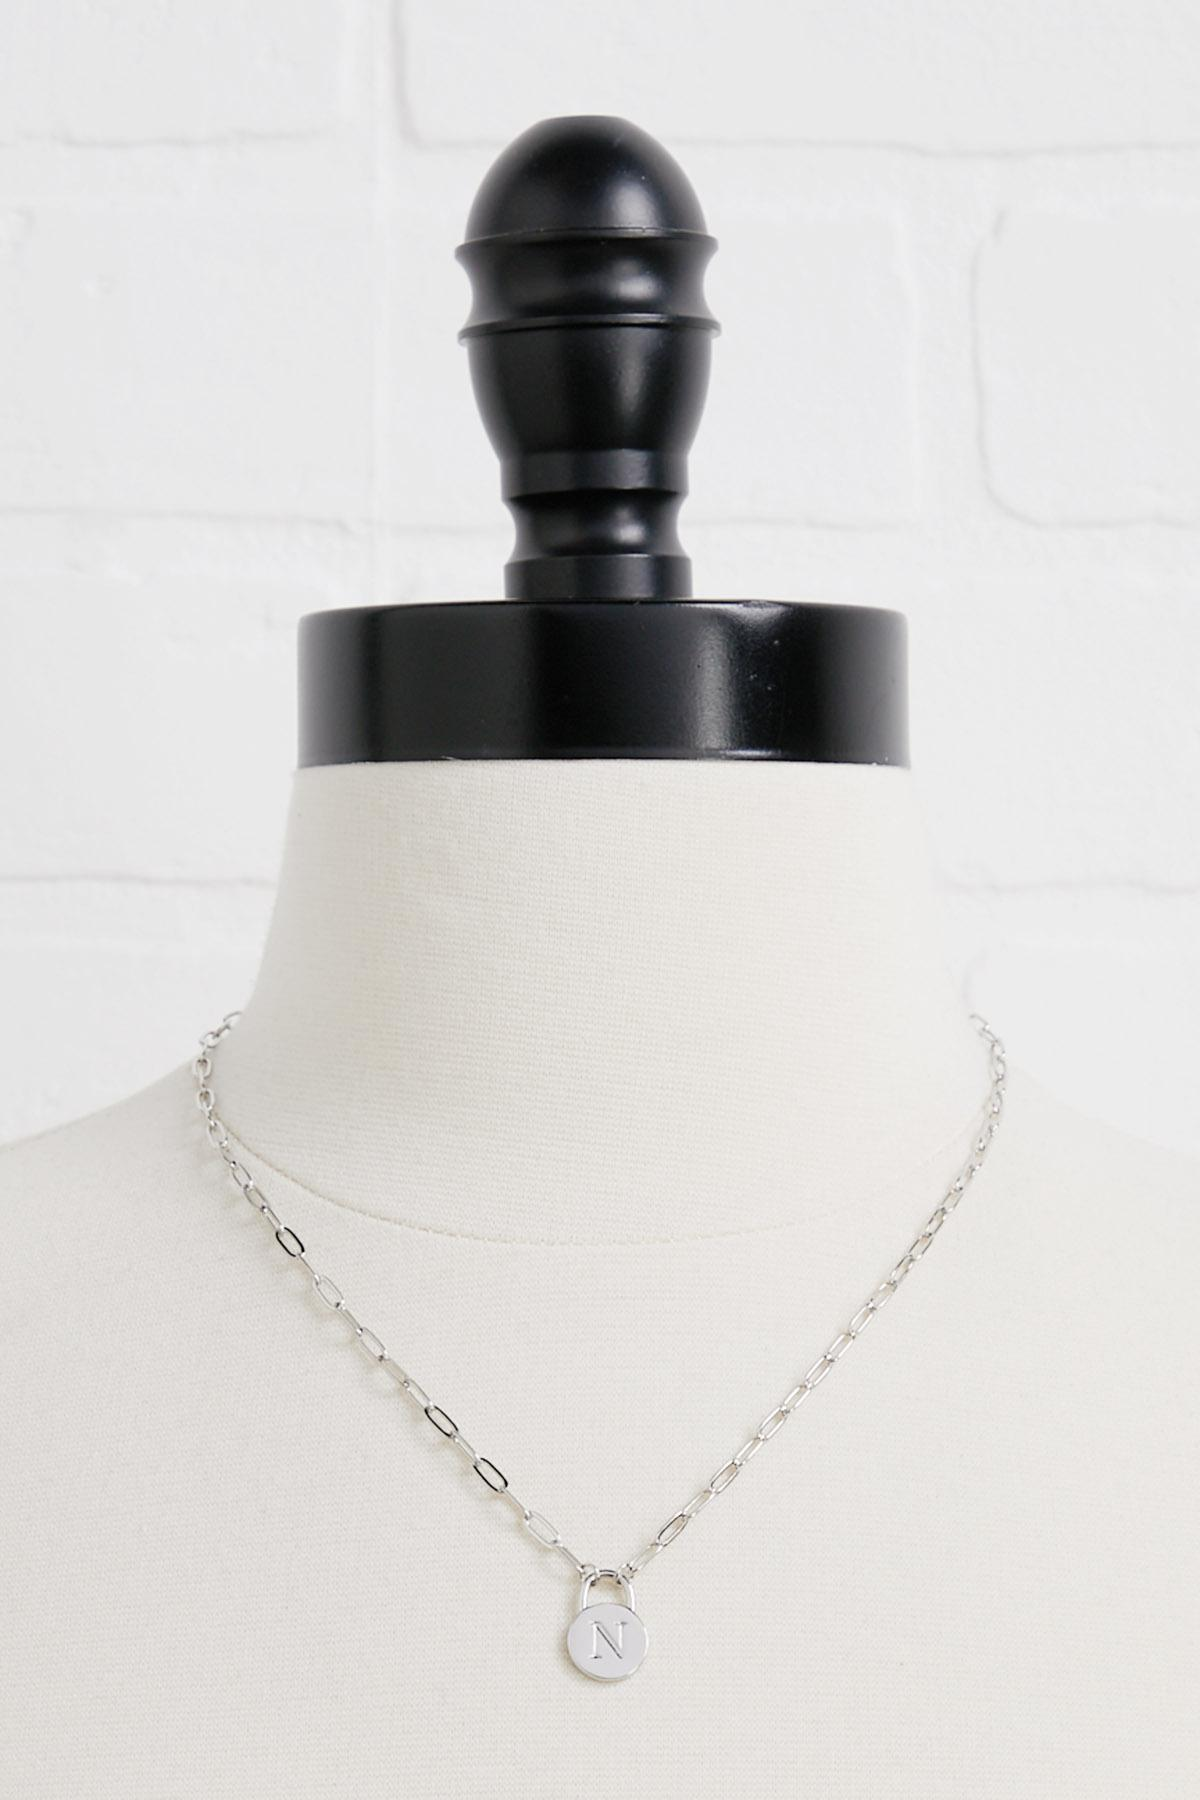 Silver N Necklace